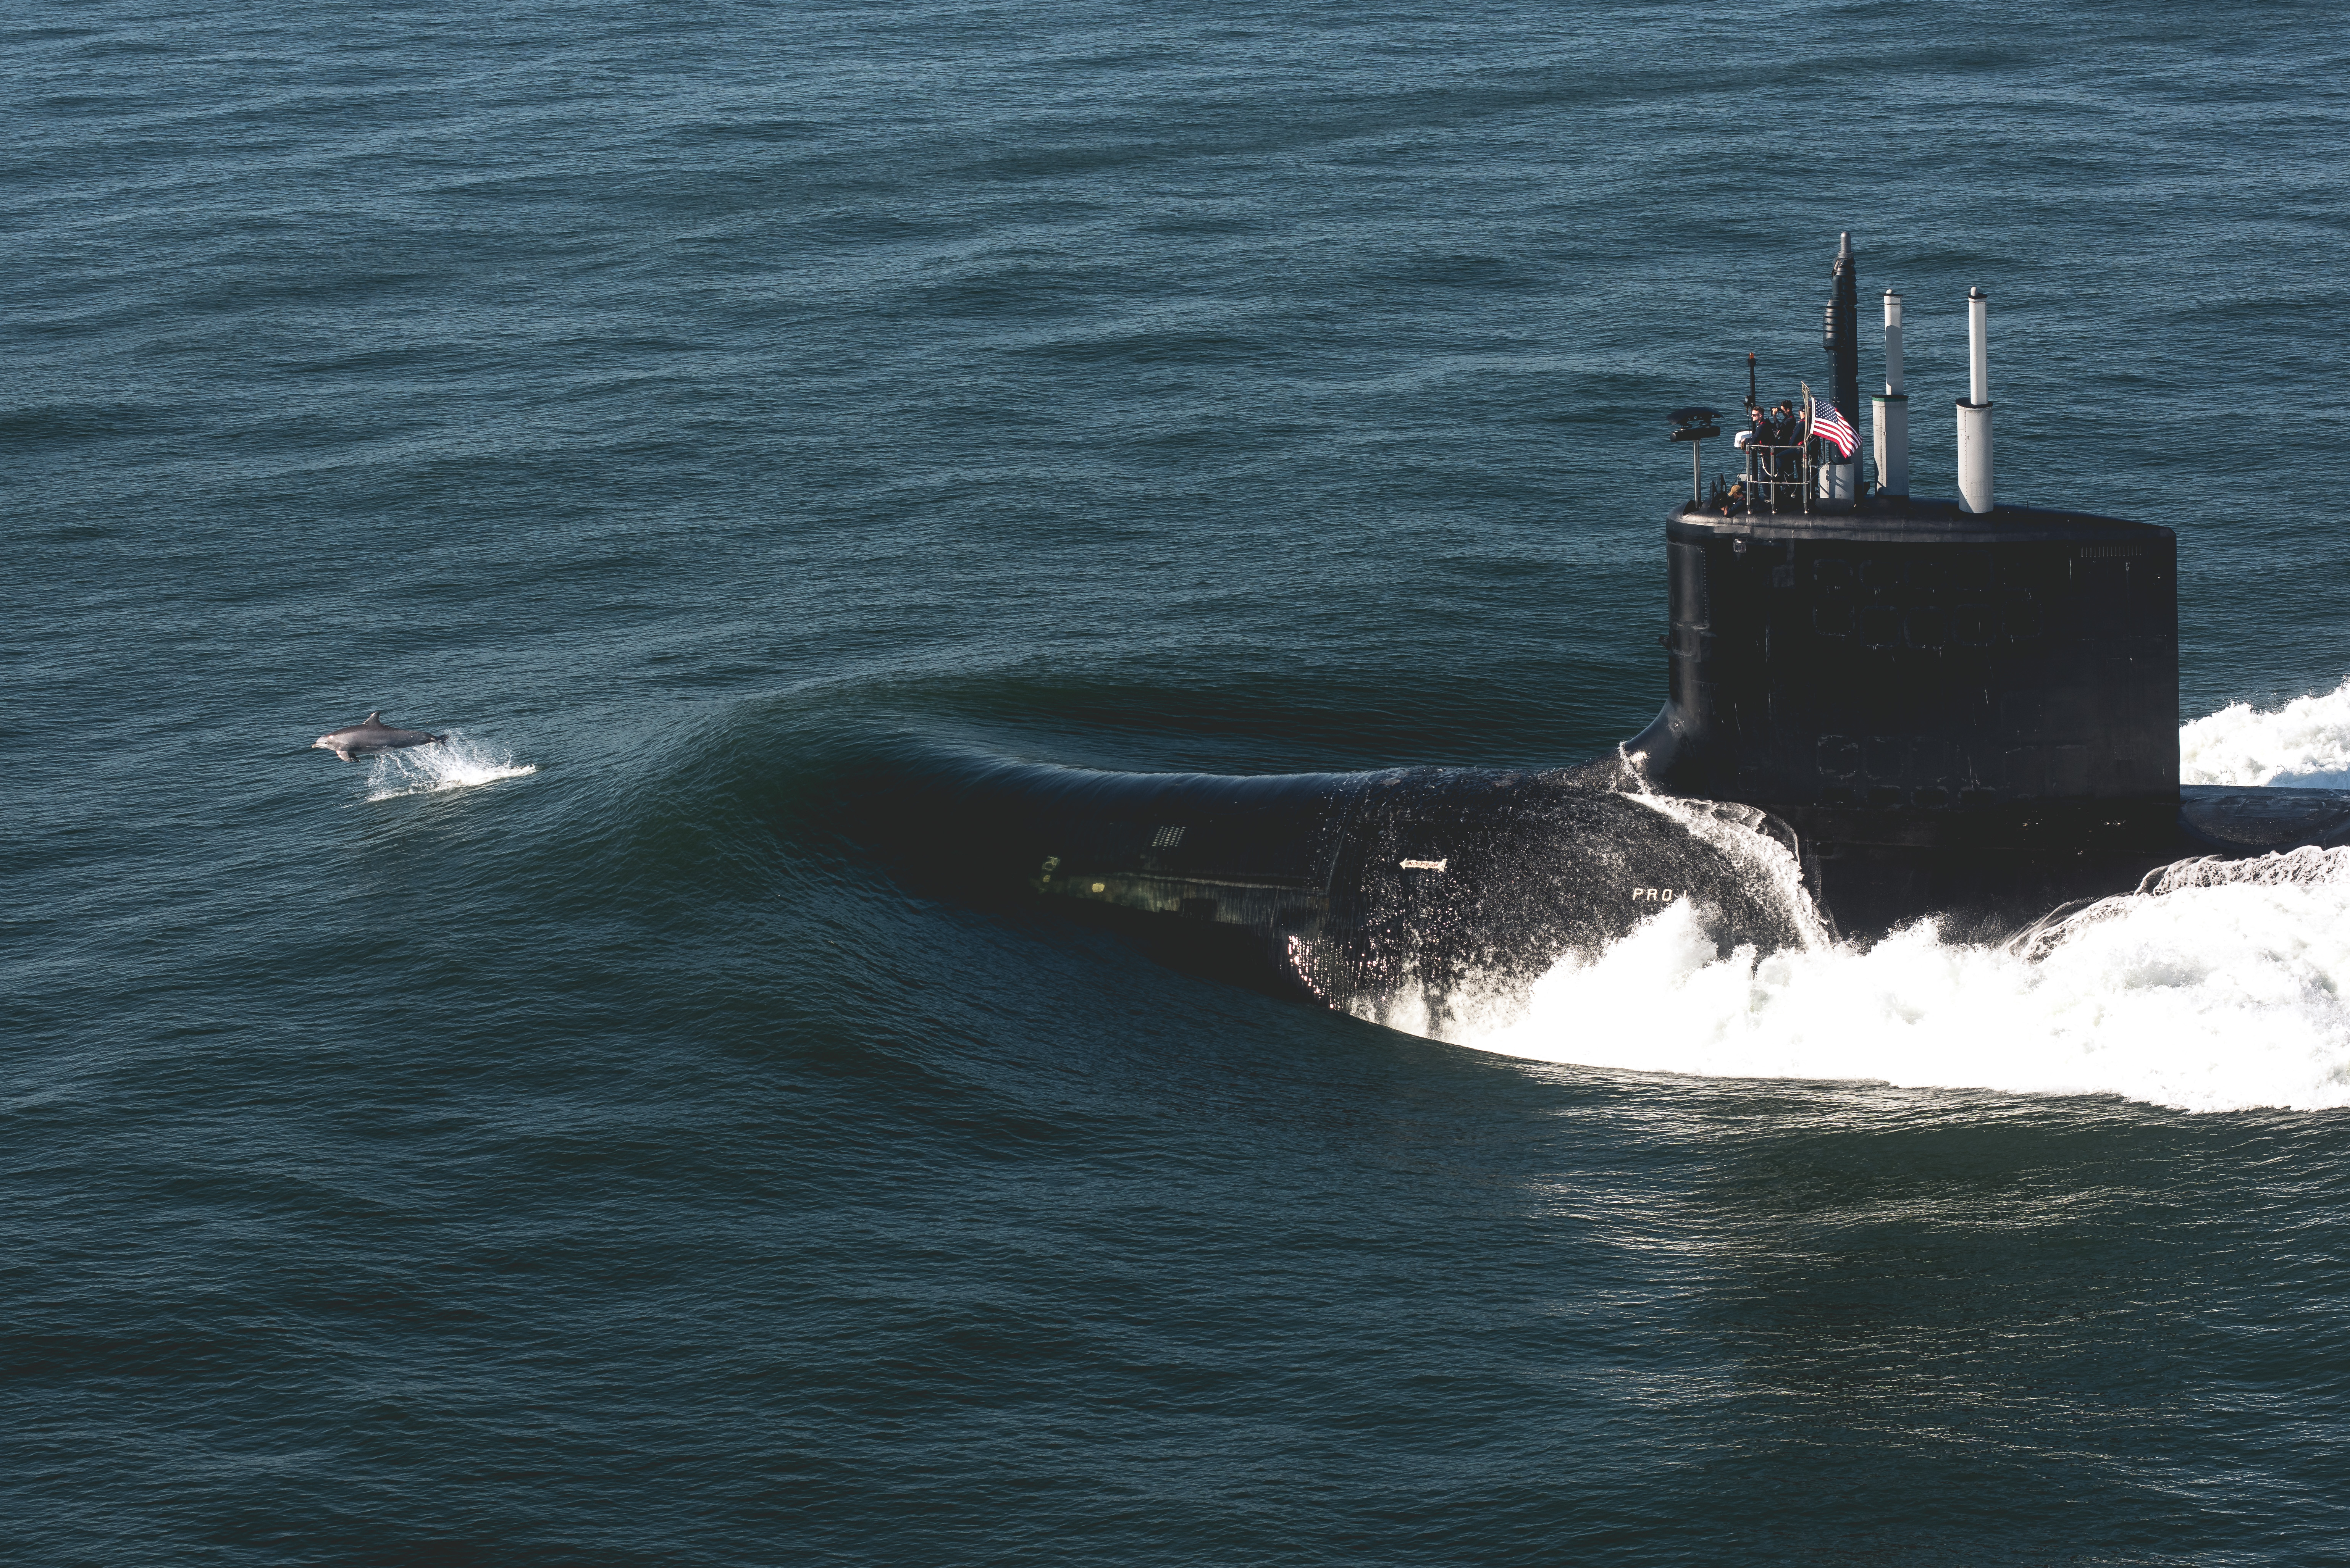 The Virginia-class attack submarine Delaware transits the Atlantic Ocean after departing Huntington Ingalls Industries' Newport News Shipbuilding division during sea trials in August 2019. (Courtesy of Huntington Ingalls Industries)